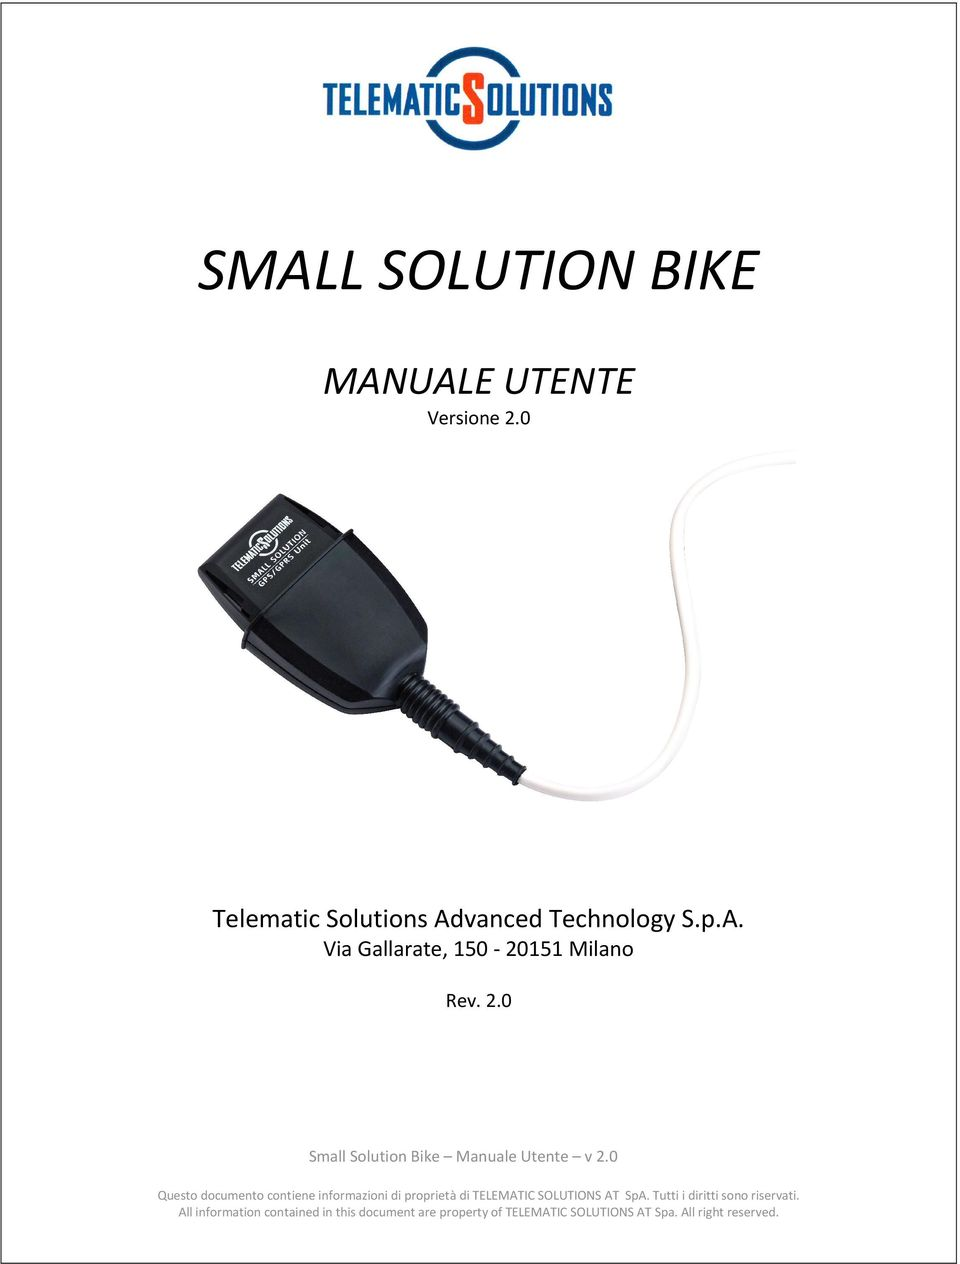 0 Telematic Solutions Advanced